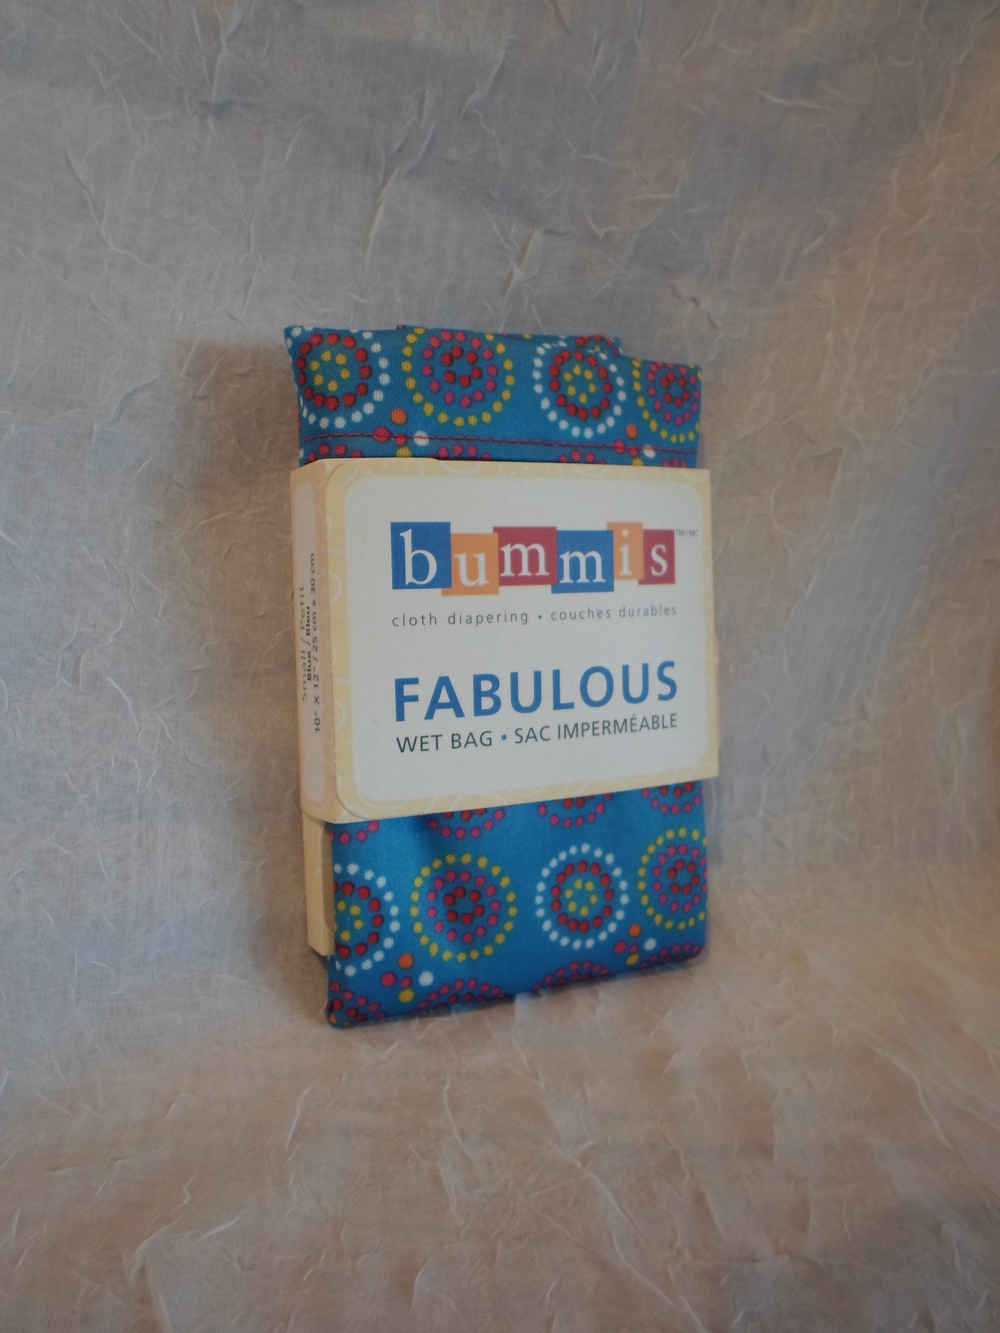 Bummis Fabulous Wet Bag size Small $12.25 Wants 1